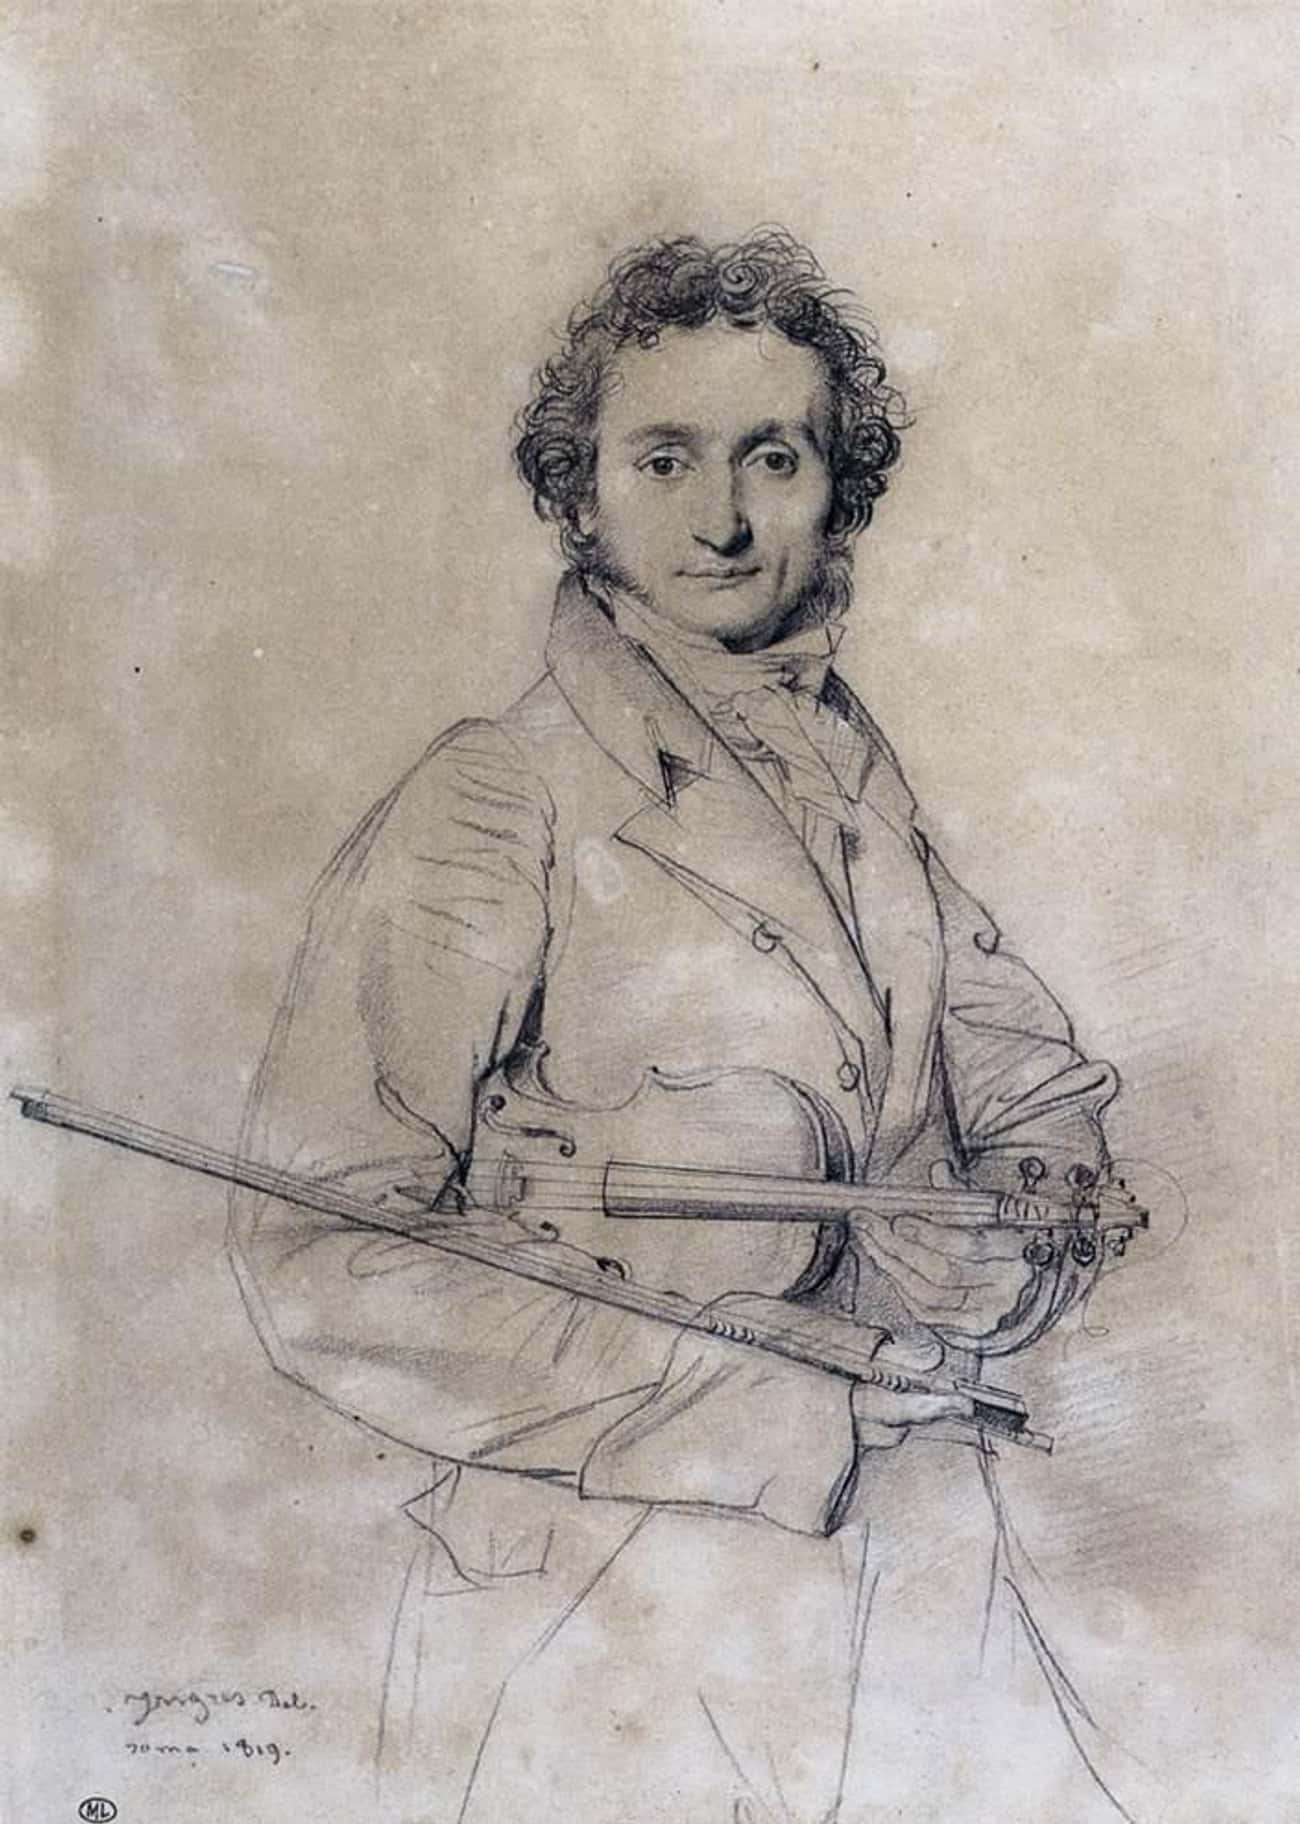 Niccolò Paganini is listed (or ranked) 2 on the list List of Famous Violinist/Composers